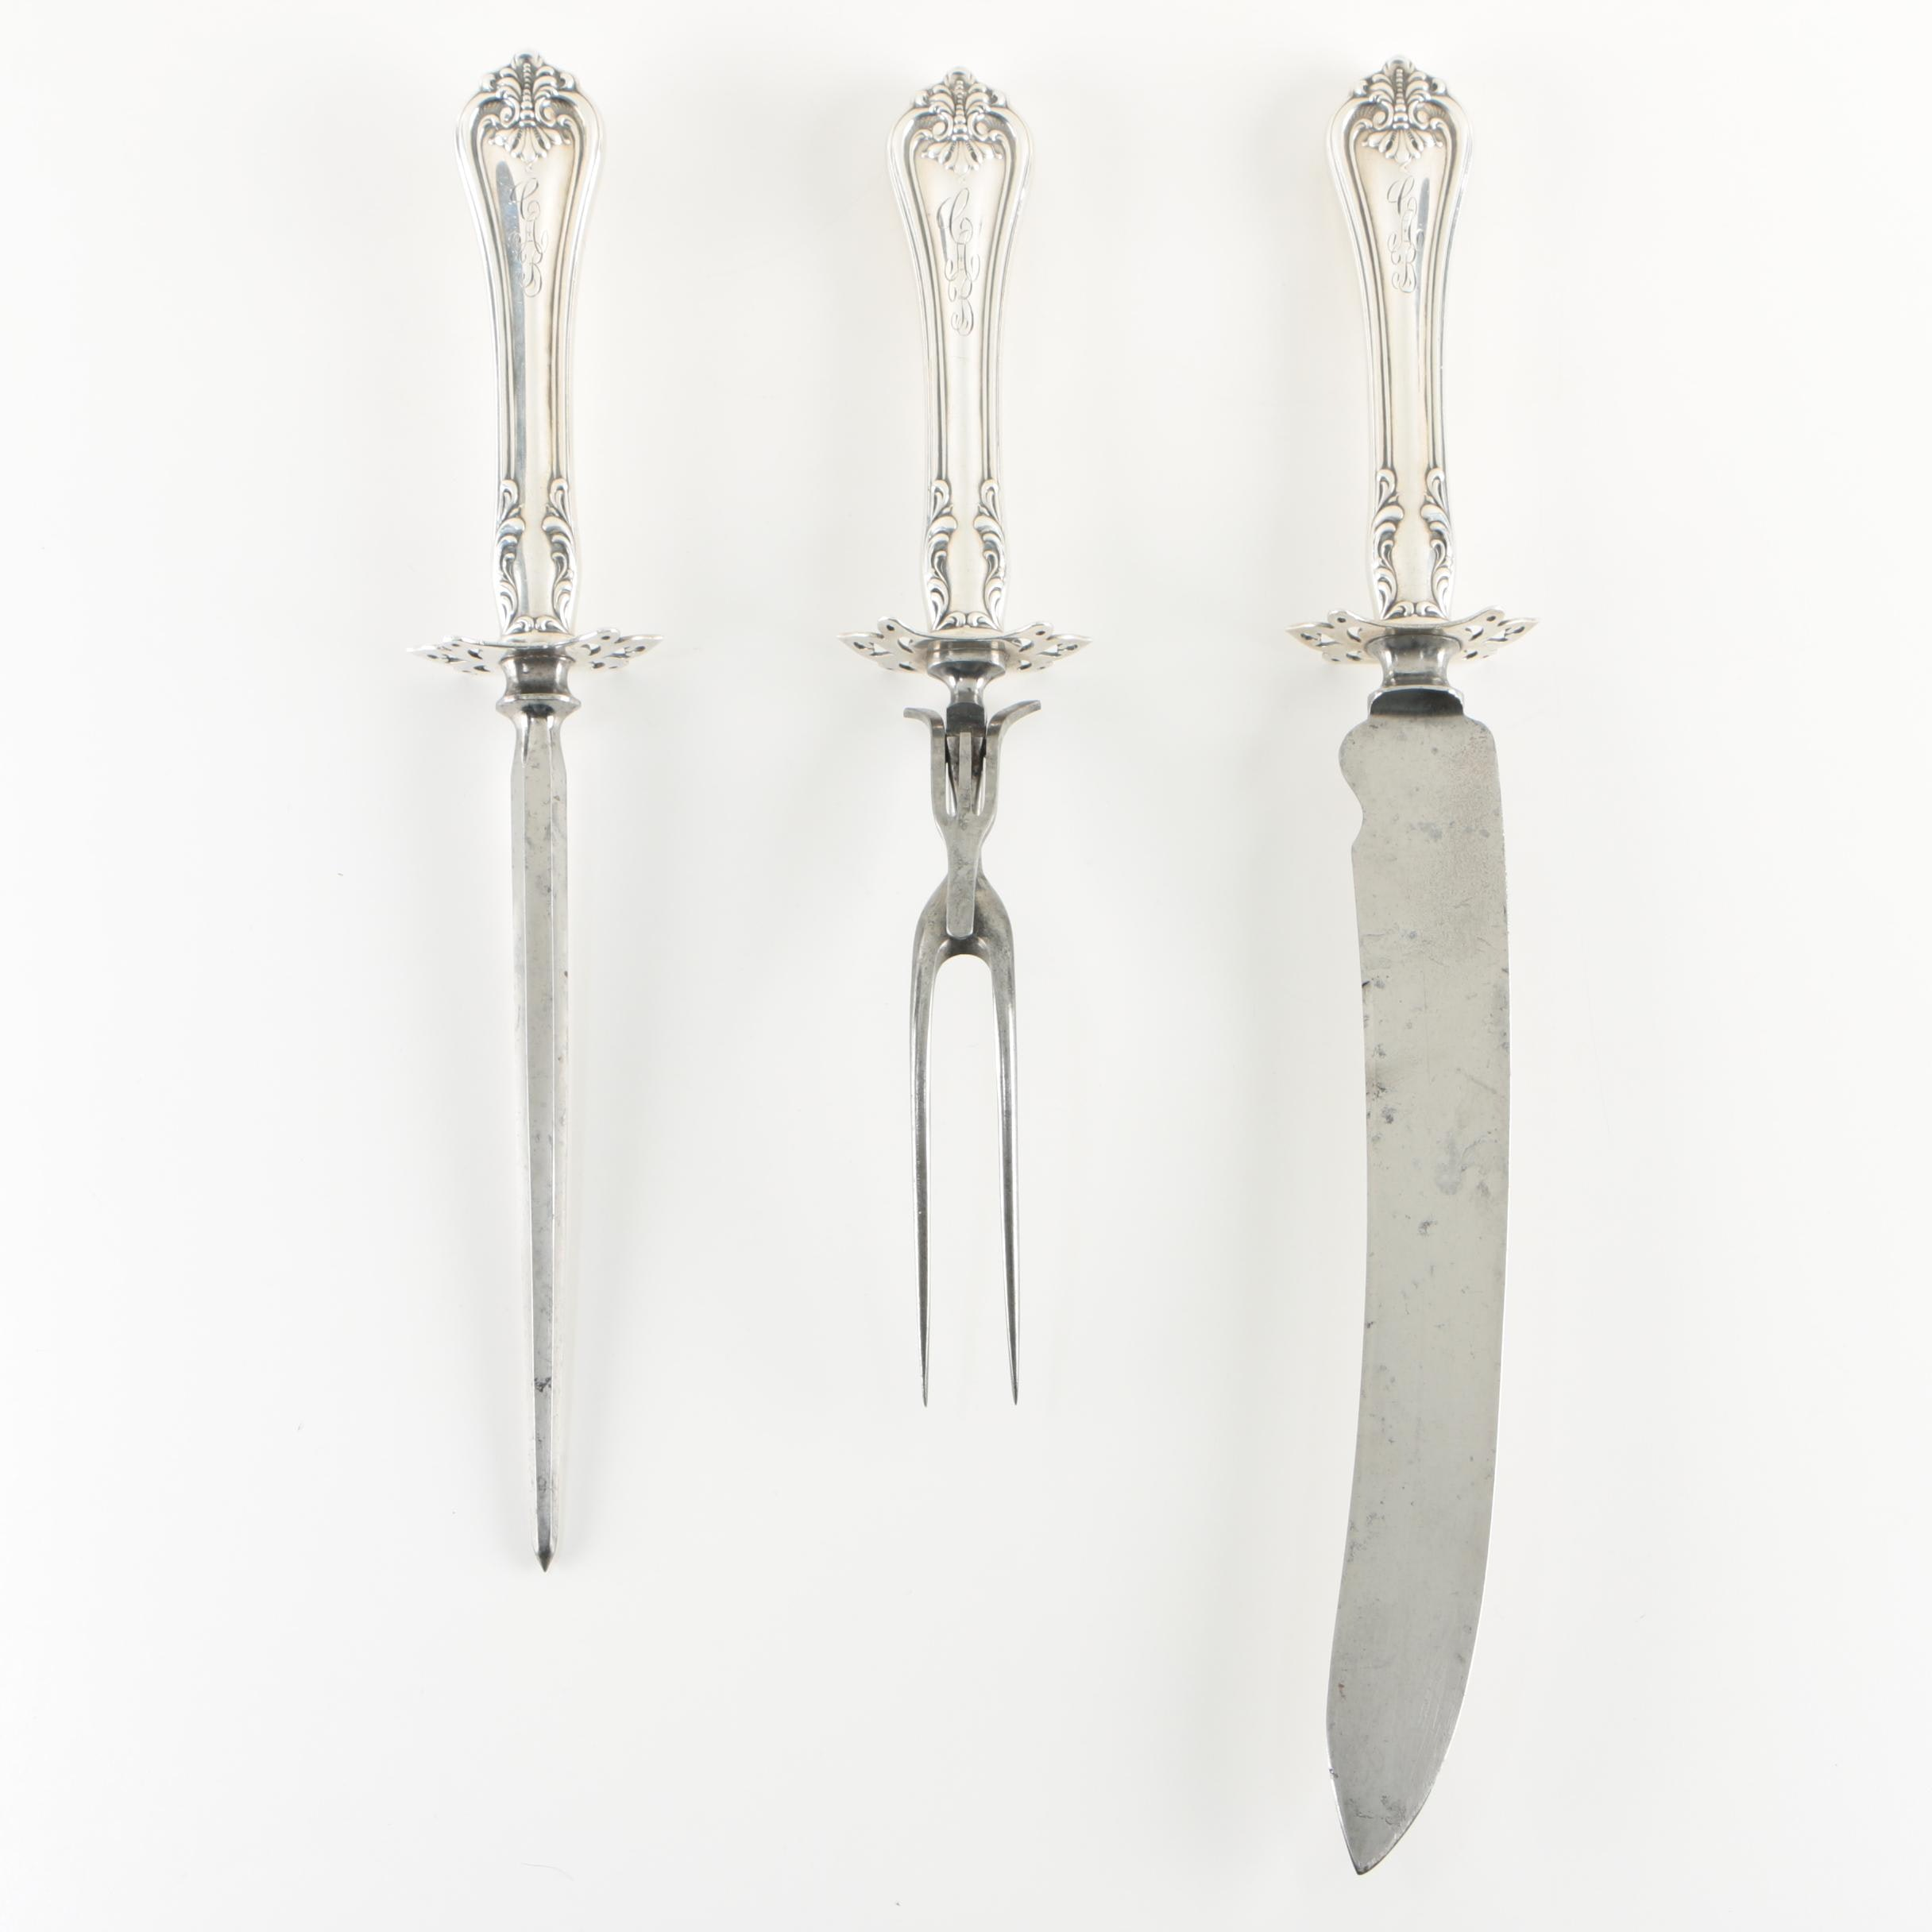 """Towle """"Richmond"""" Sterling Handled Carving Set"""